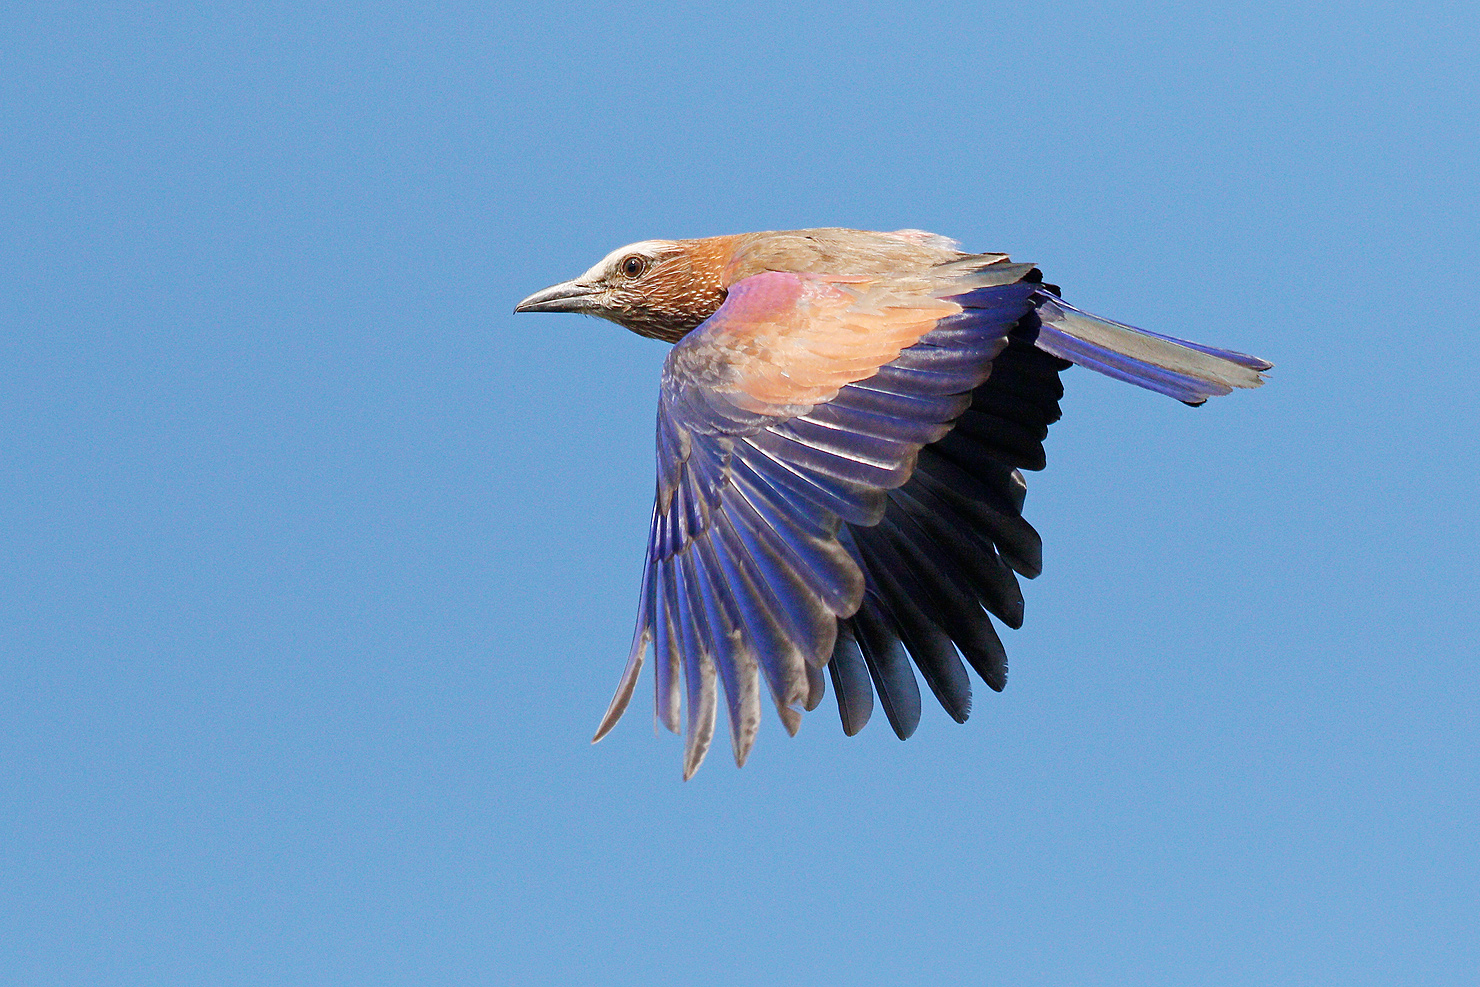 Purple Roller / Borakalalo National Park, North West Province, South Africa / August 2017